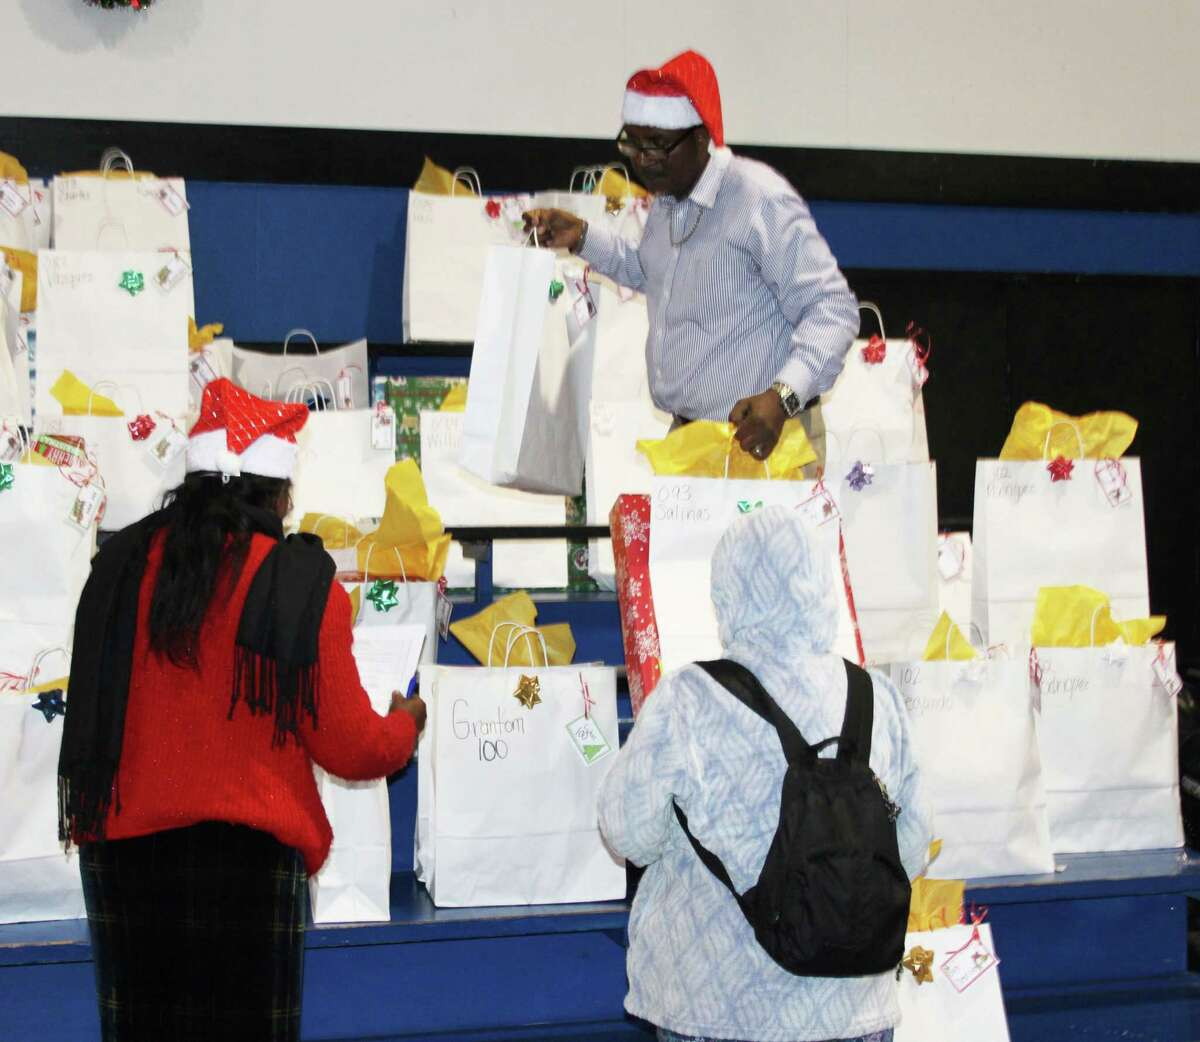 James Harrell (back) brings down a couple of bags containing pre-registered gifts for the Angel Select Toy Drive.